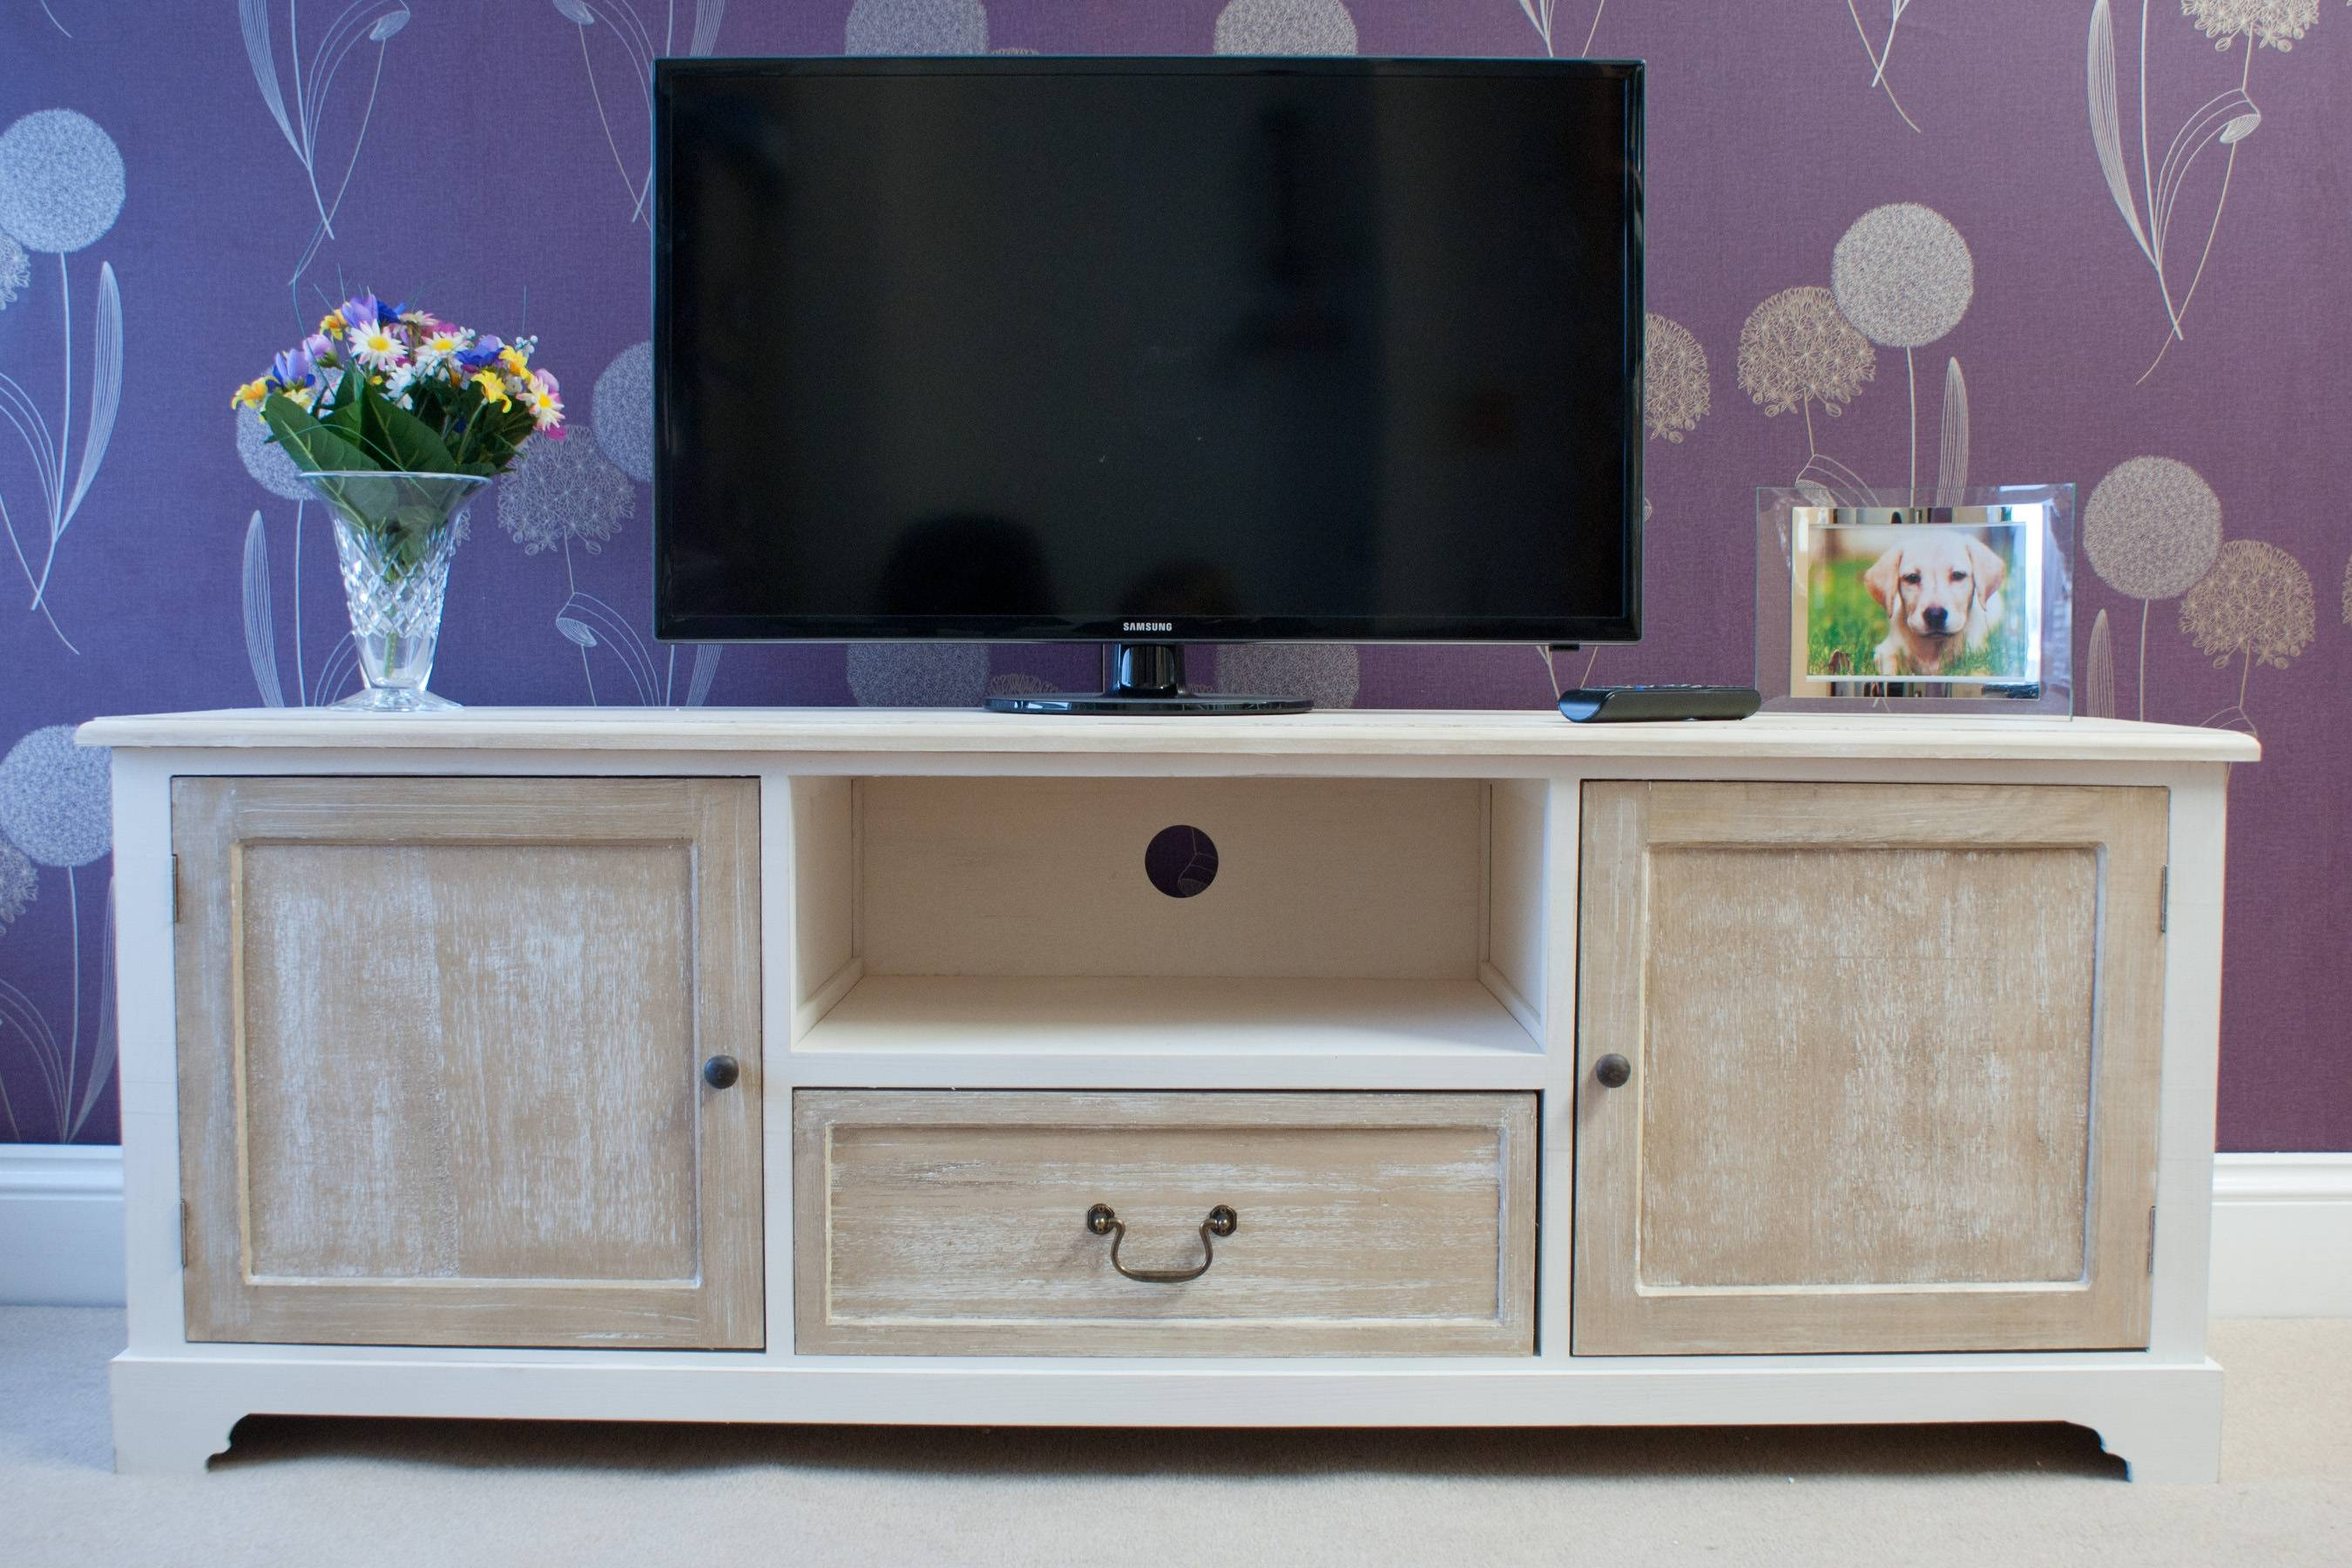 Cotswold 1 Drawer 2 Door Tv Entertainment Unit | Hfs Eastbourne within Tv Drawer Units (Image 6 of 15)